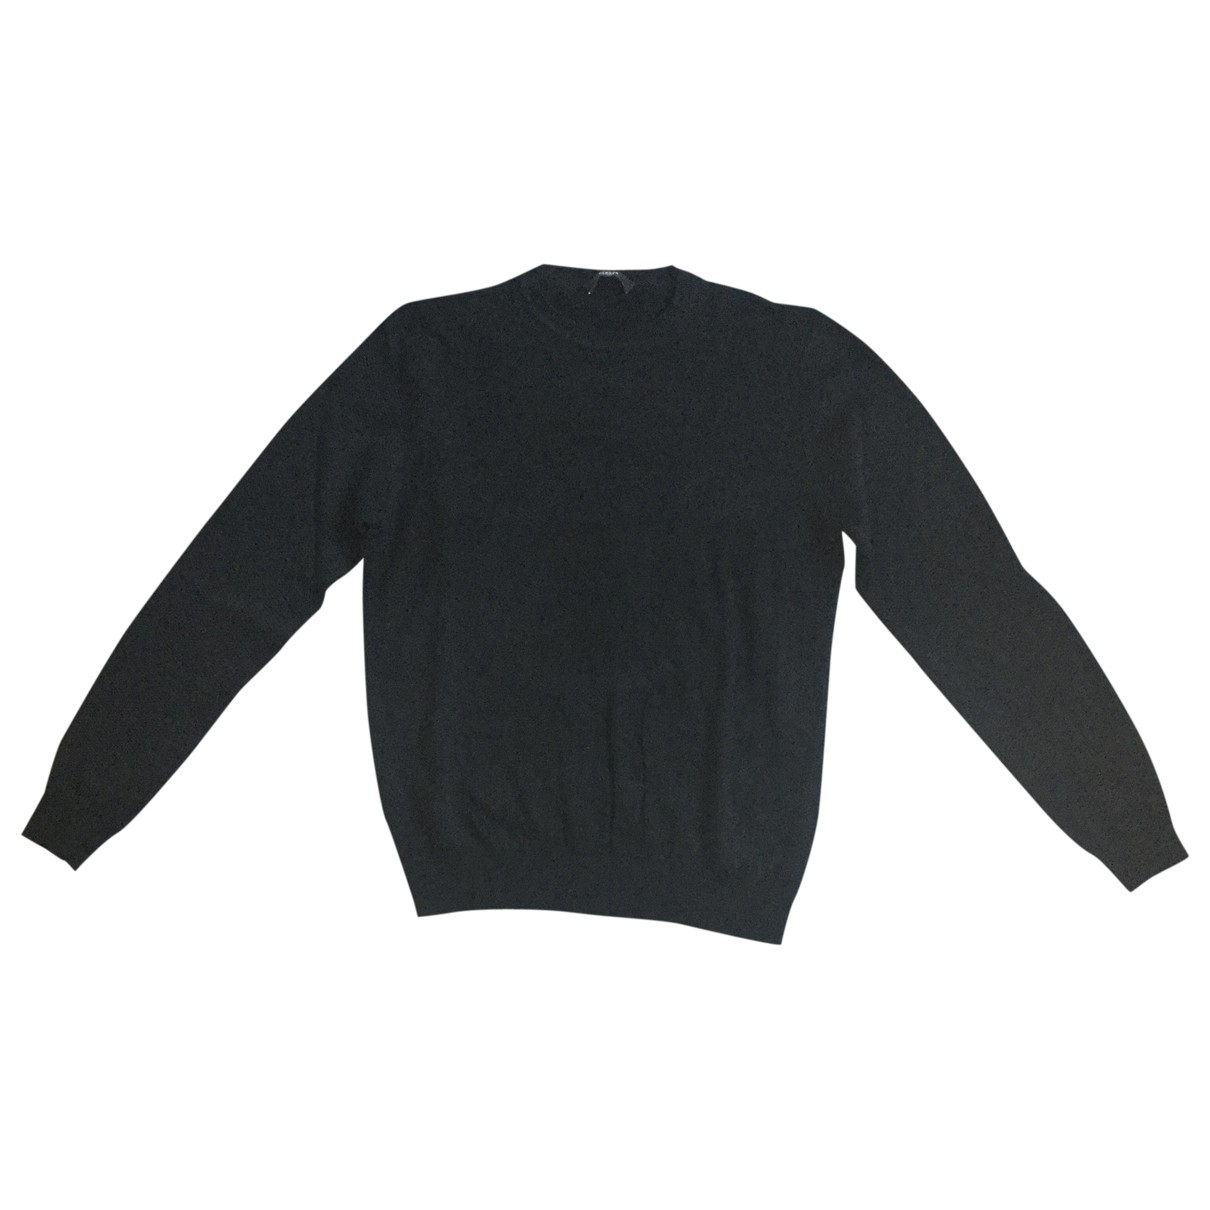 Versus \N Black Knitwear & Sweatshirts for Men 48 IT